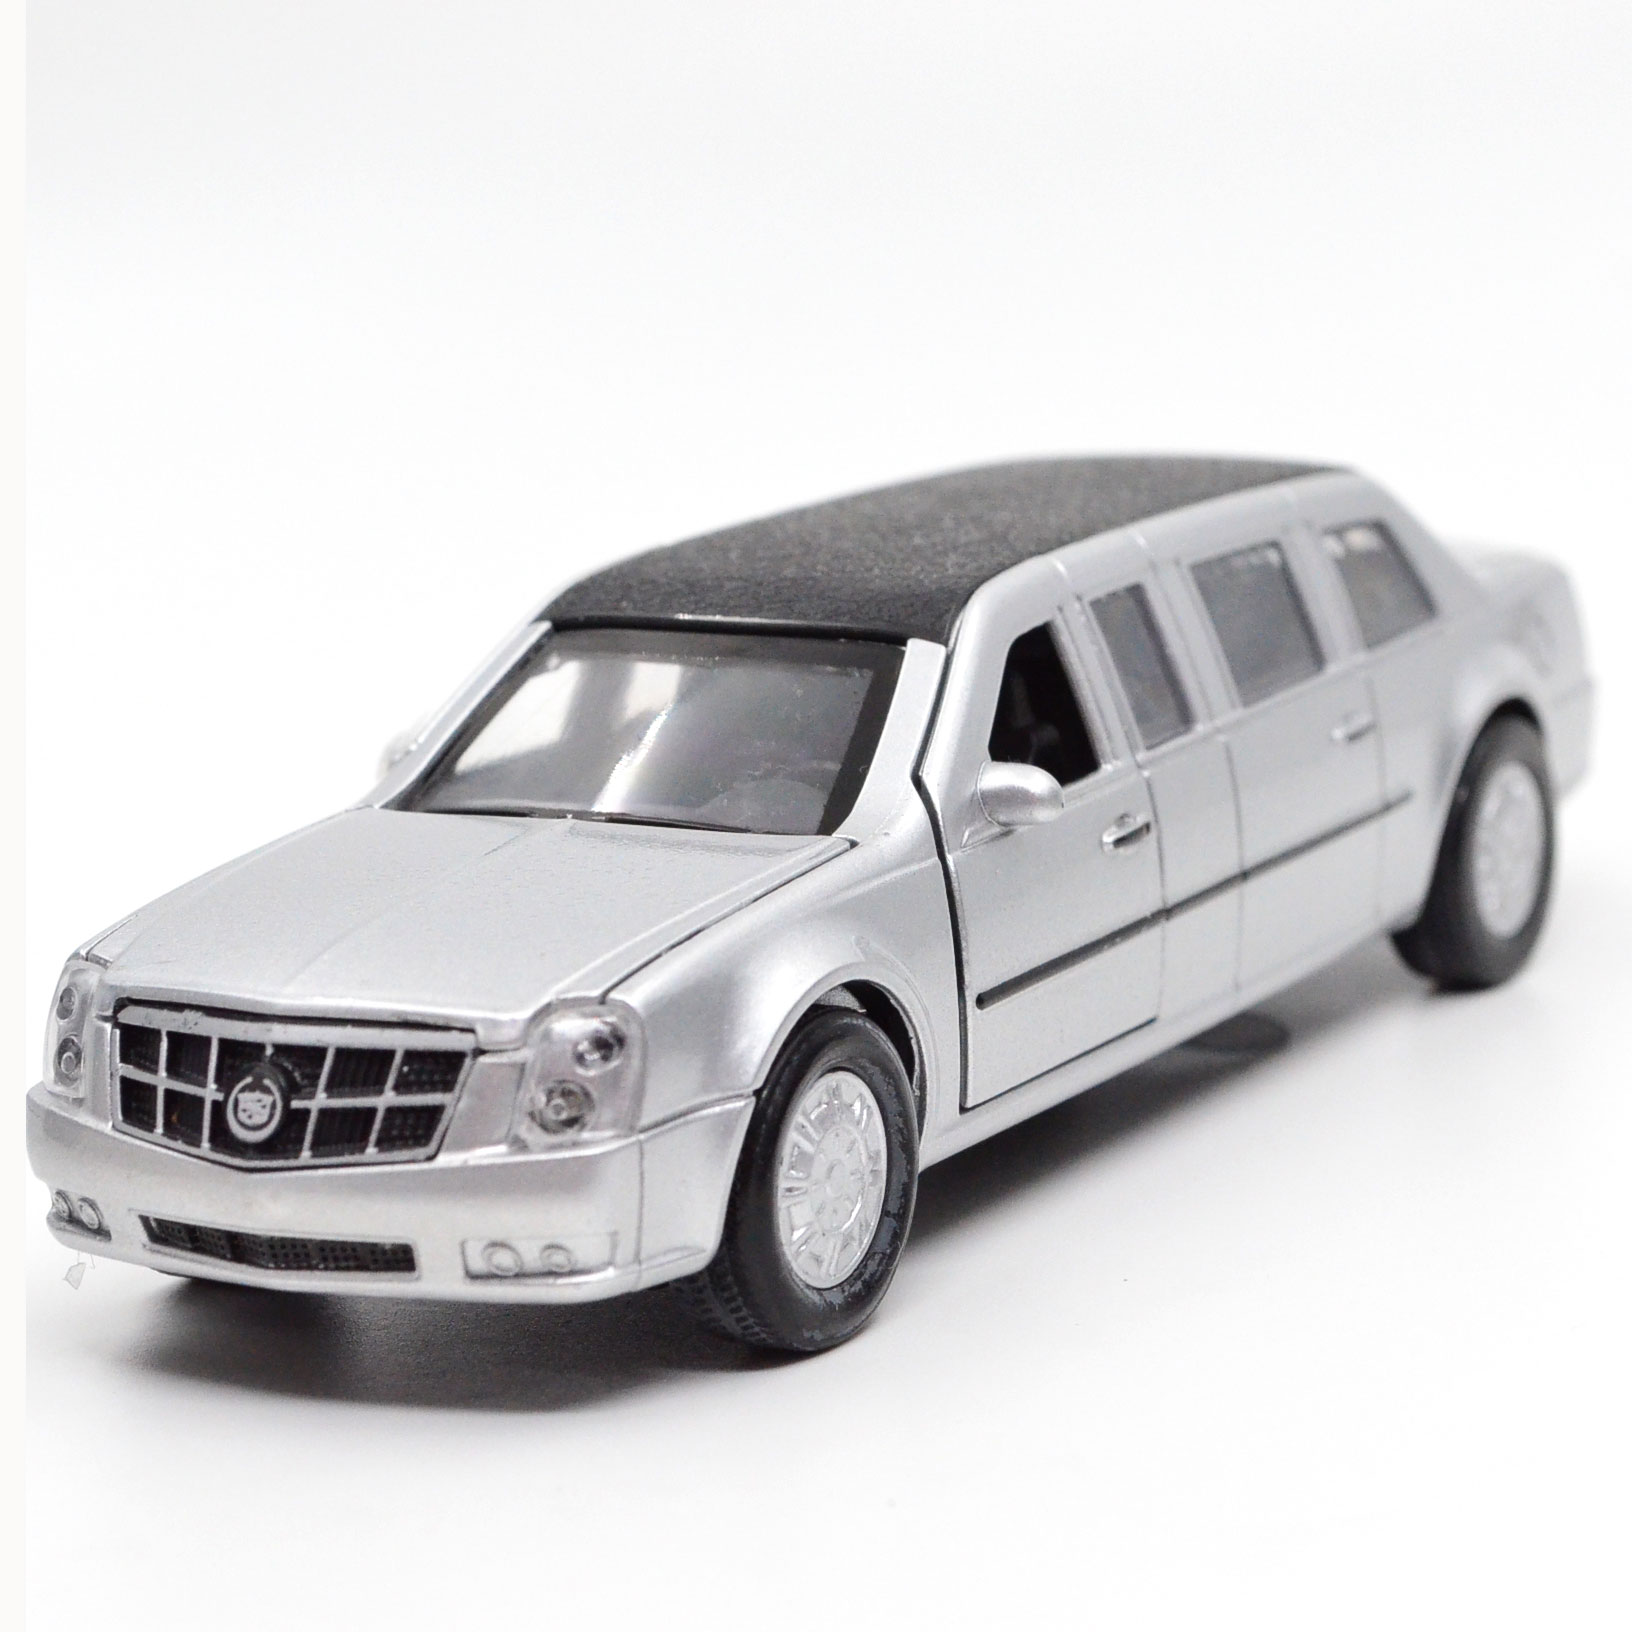 Online Shopping Toy Limousine